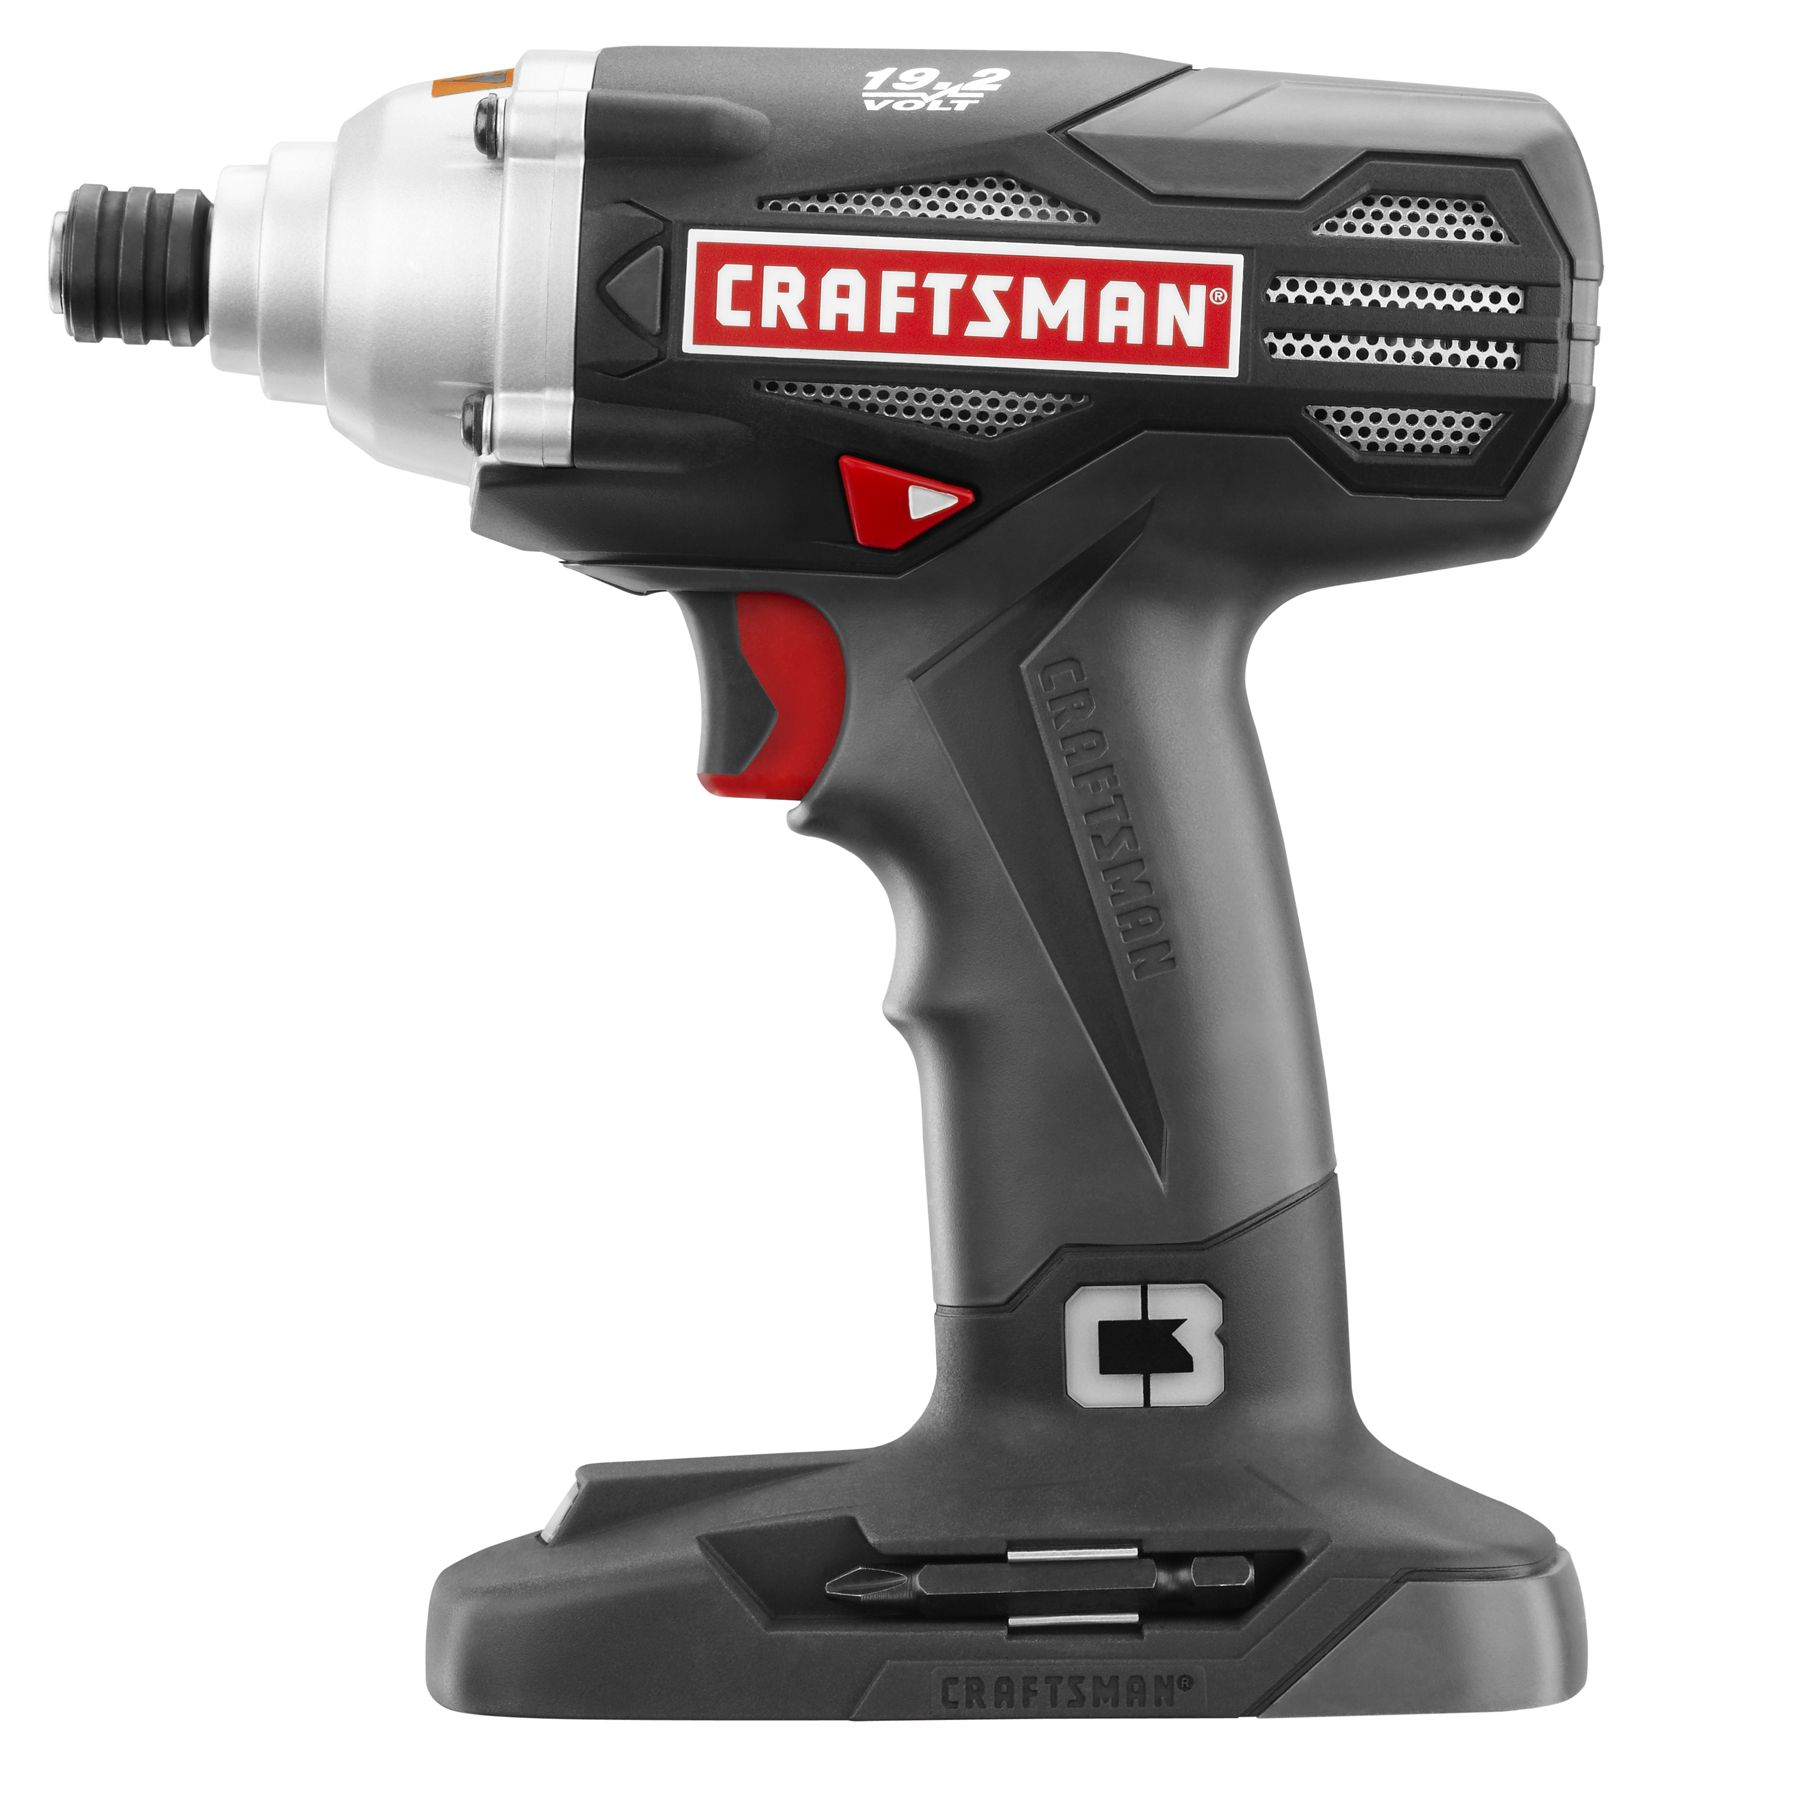 Craftsman C3 19.2-Volt Impact Driver (Battery is not included)